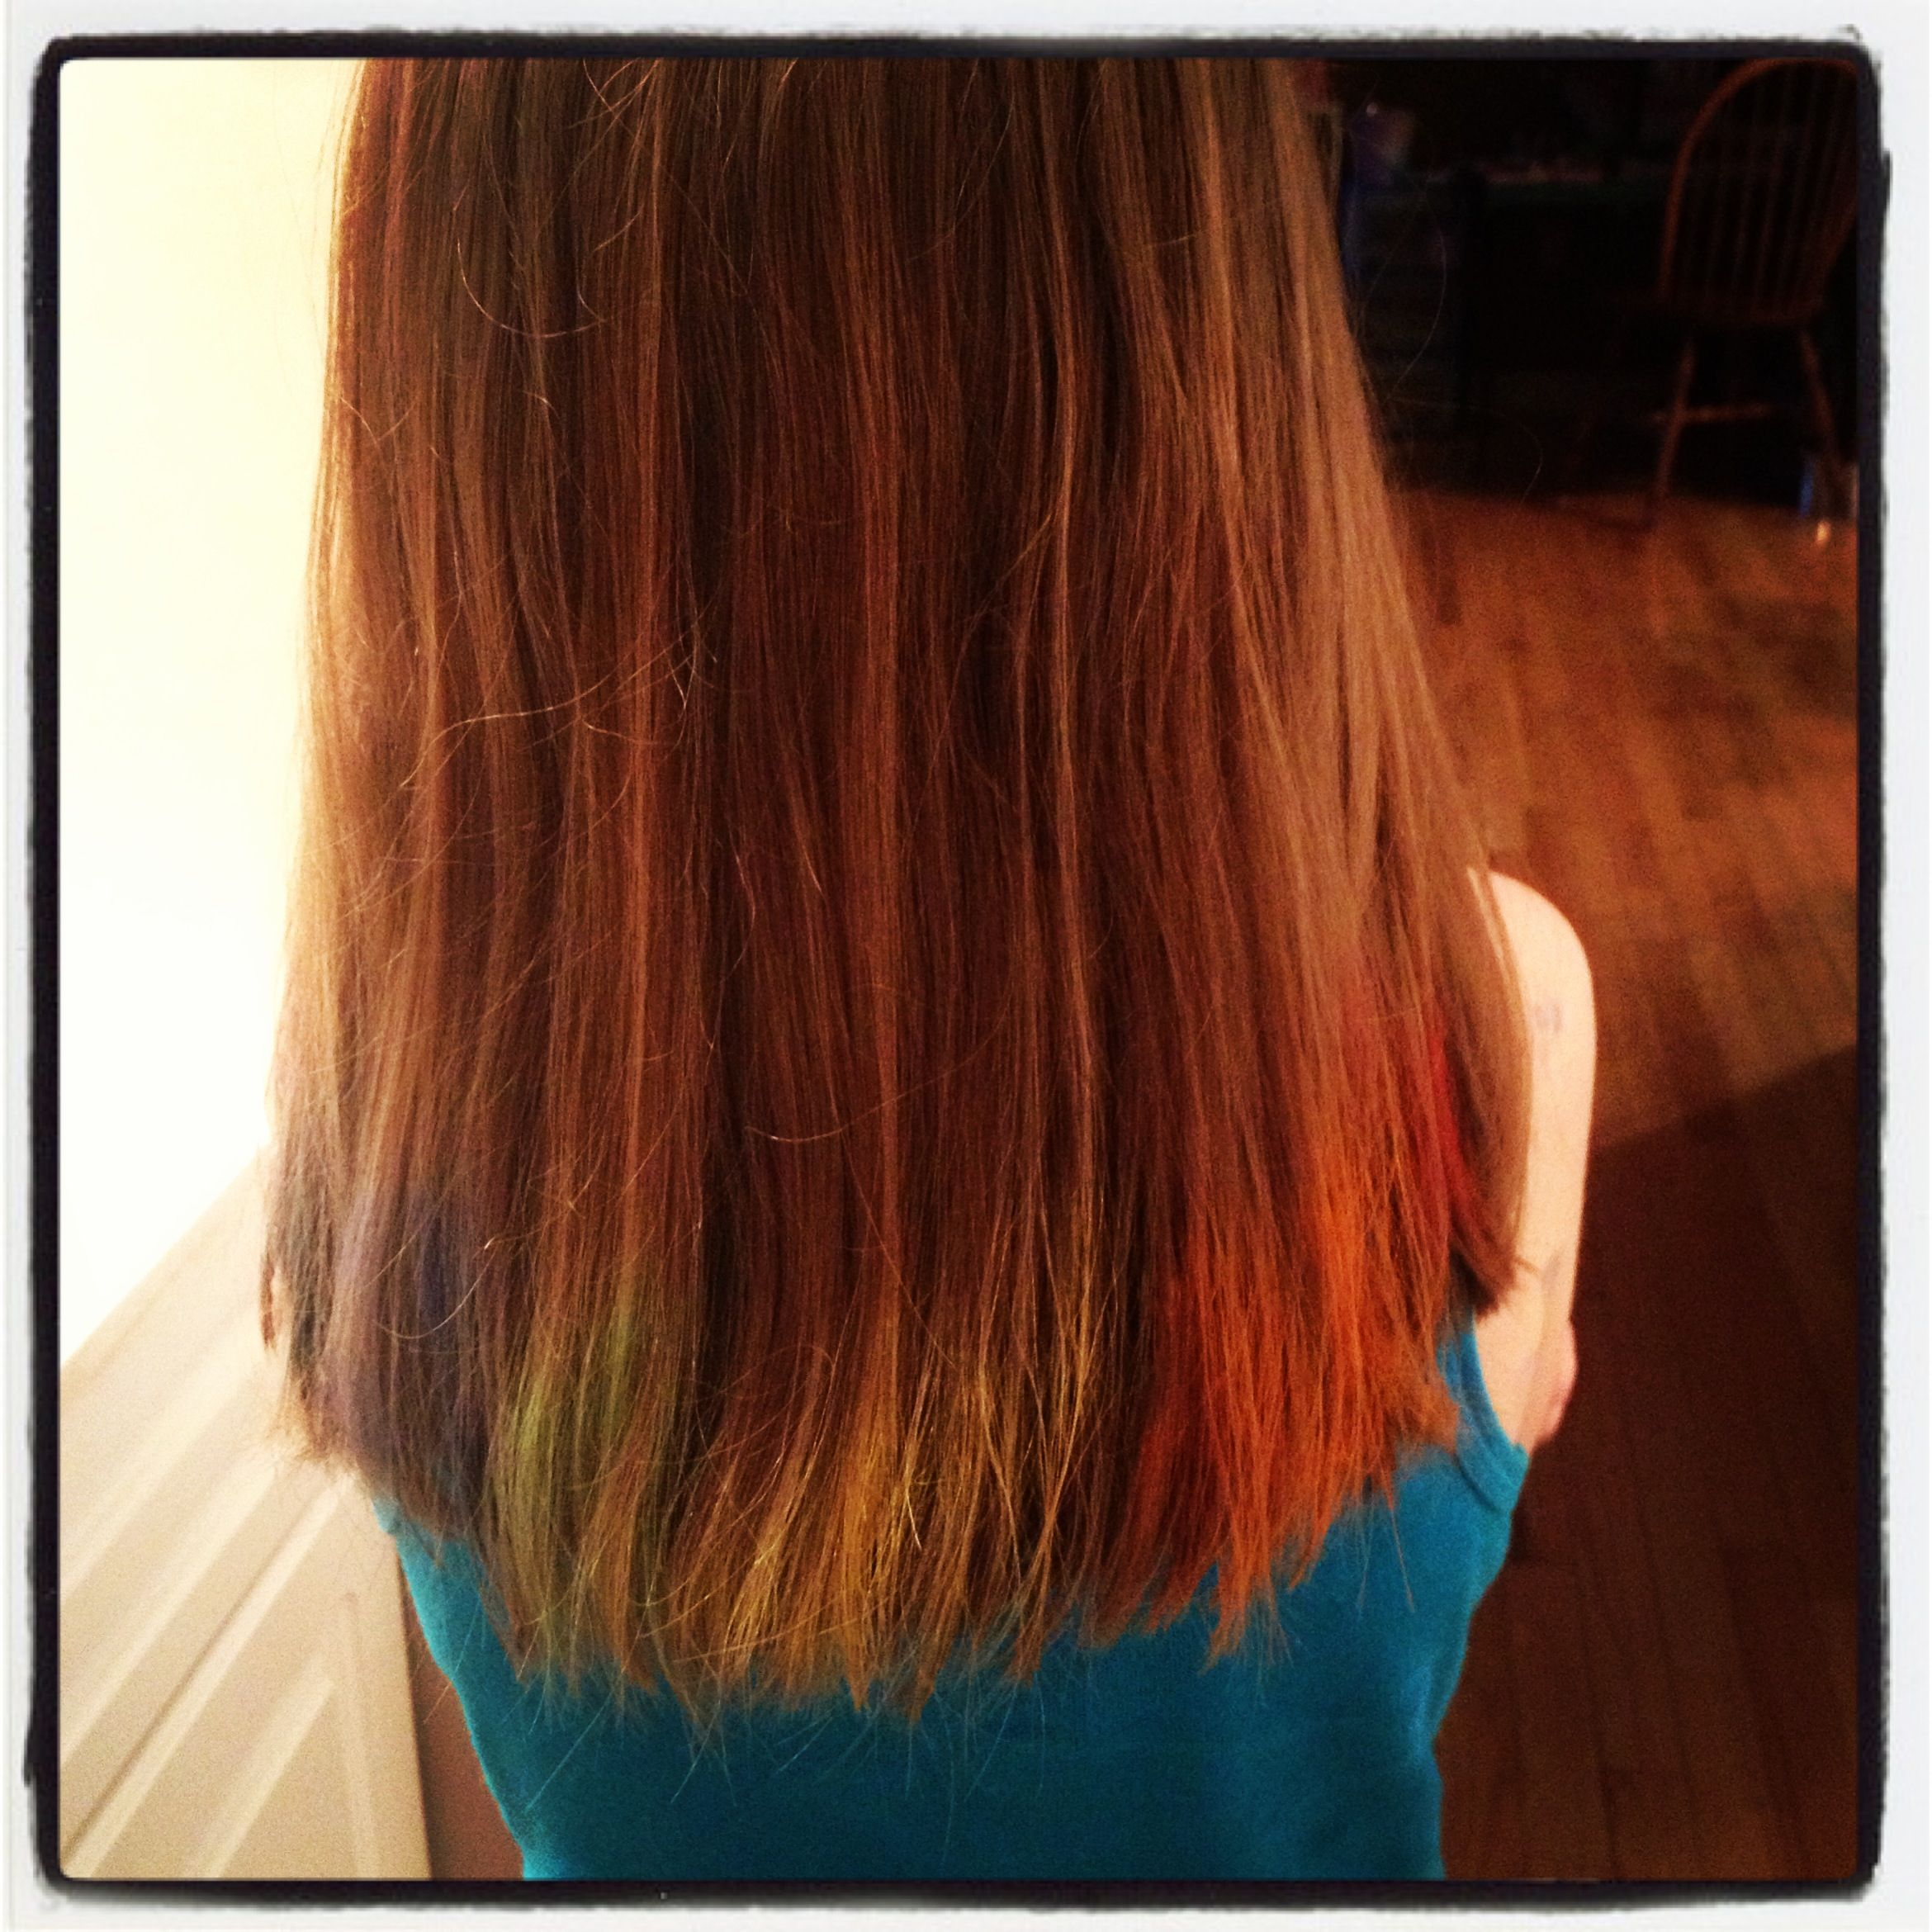 Simply Wet Hair, Apply Colour Using Pastel Chalk, Dry With